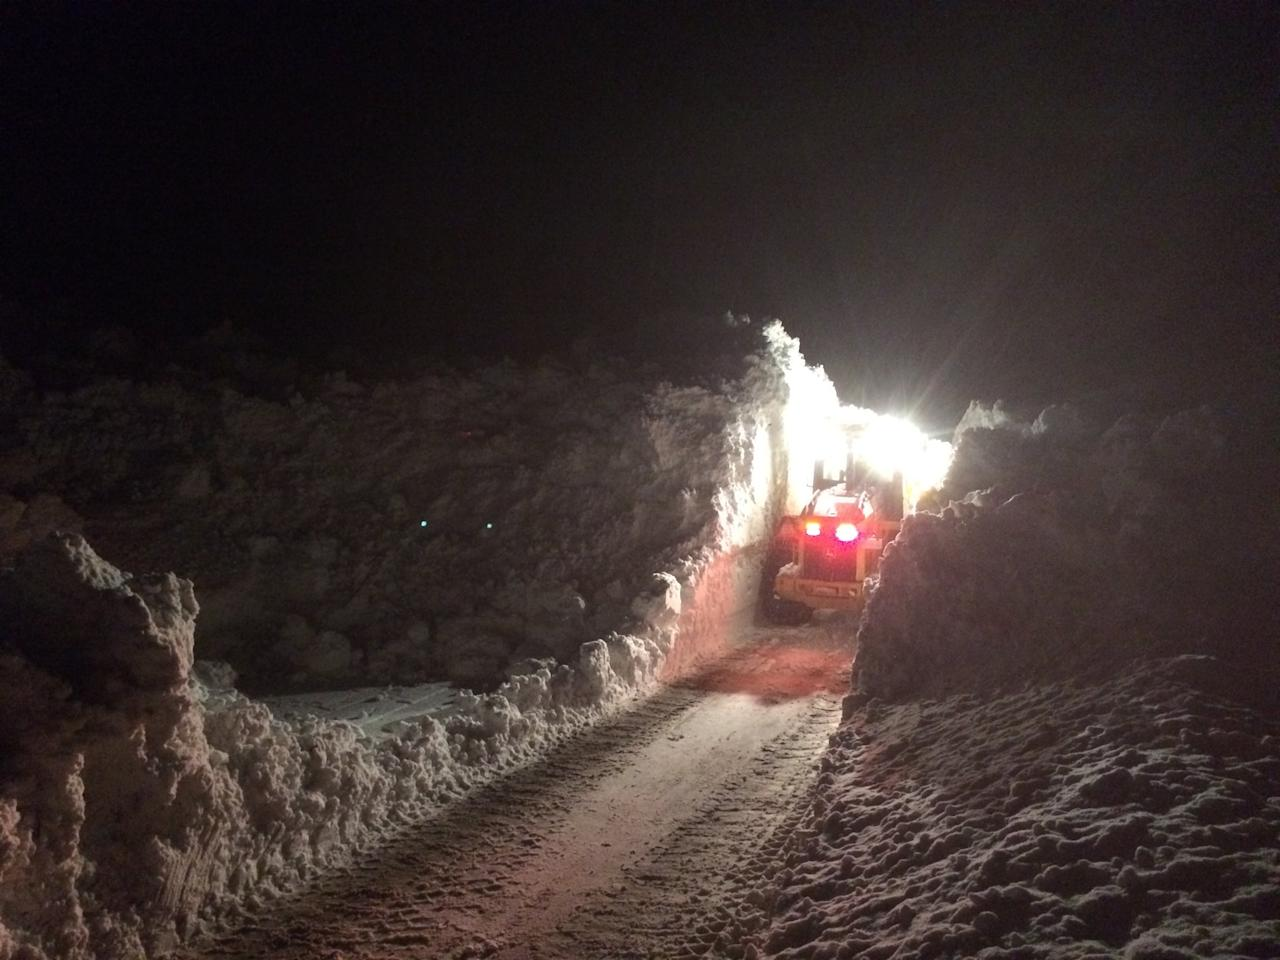 <p>Crews in Canada work through the night to clear snow that came down in an avalanche on a highway between New Denver, B.C. and Retallack, B.C. on Feb. 3. Photo from West Kootenay District/Twitter. </p>